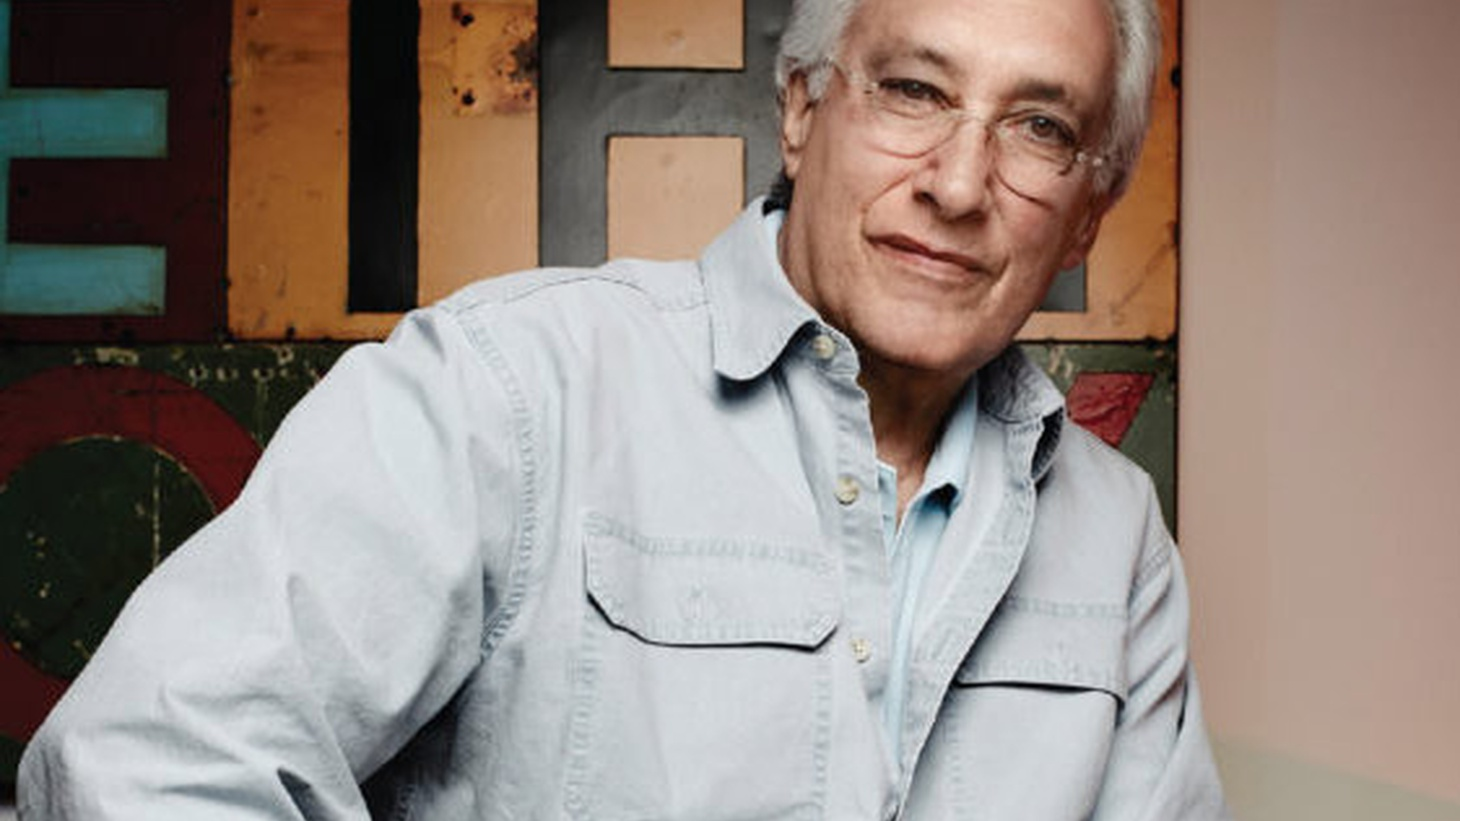 Steven Bochco, the writer-producer behind record-breaking Emmy winners Hill Street Blues, LA Lawand NYPD Blue, fought battles with everyone from out-of-control actors to network censors in his long career. He isn't afraid to tell those tales in his memoir, Truth Is a Total Defense. This week we revisit the conversation where he shared some of his favorite stories with us.